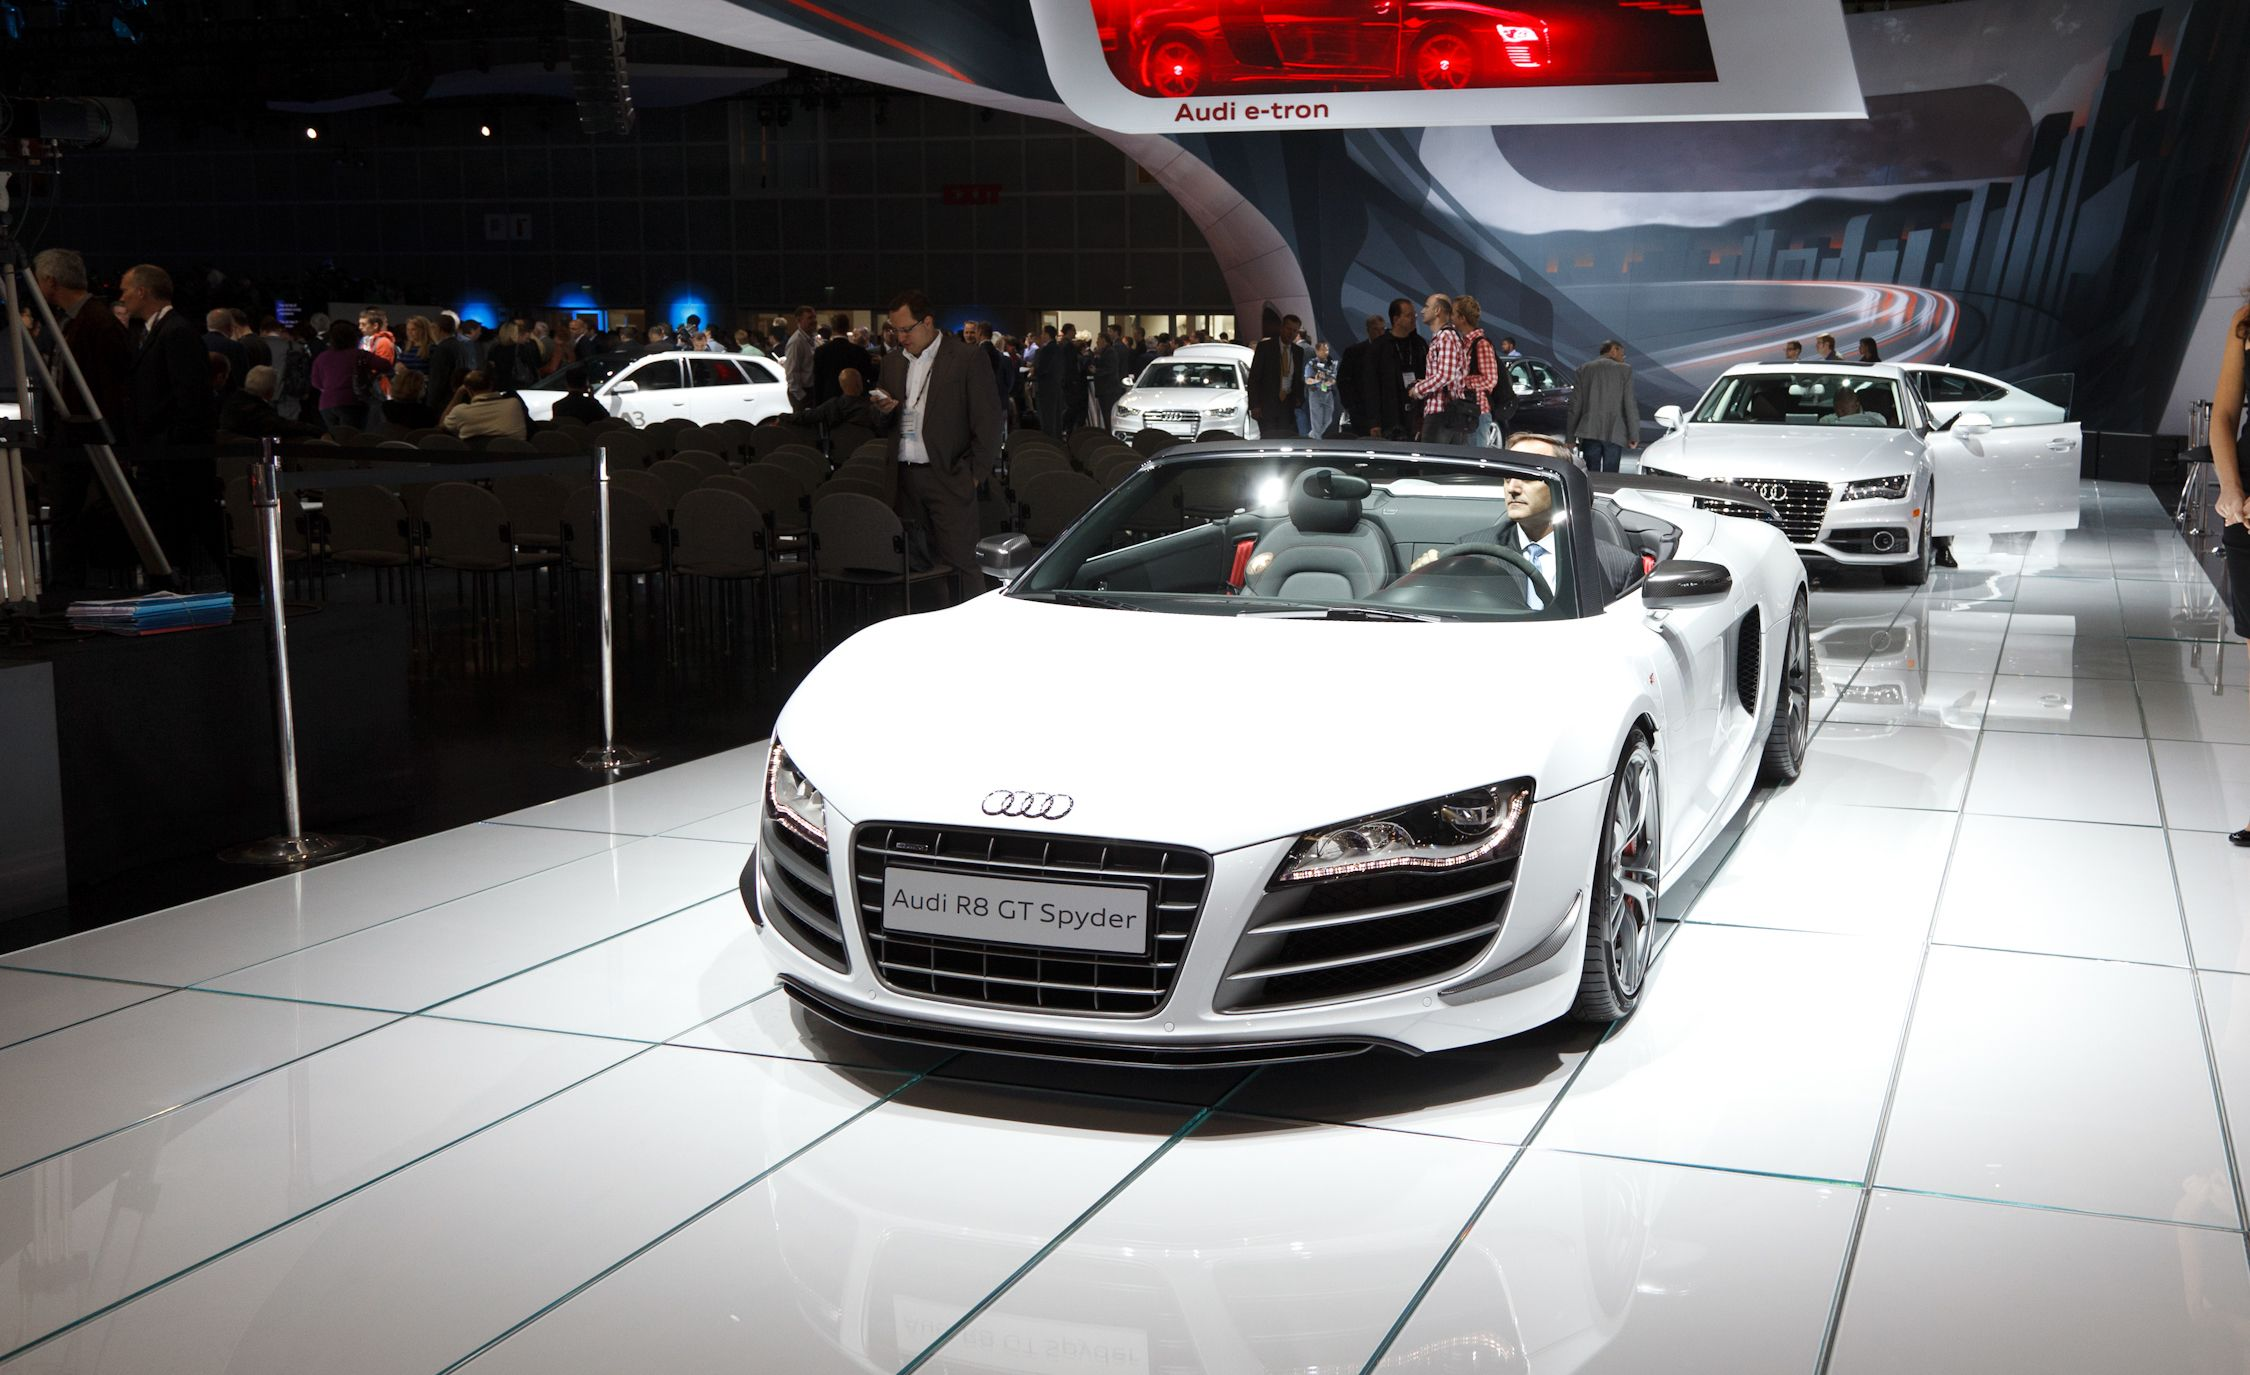 2011 Audi R8 Spyder 5 2 V10 Fsi Quattro Review Car And Driver